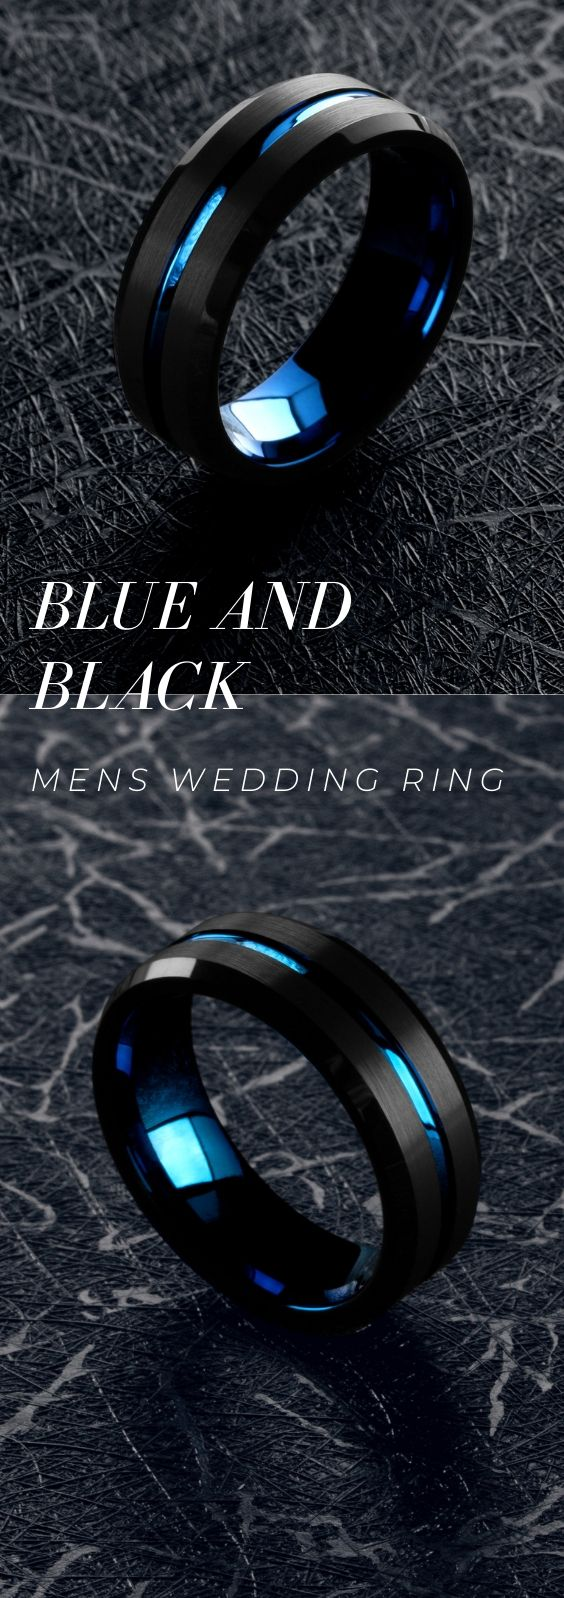 Men's Wedding Ring – A Collection Of Blue and Black Rings